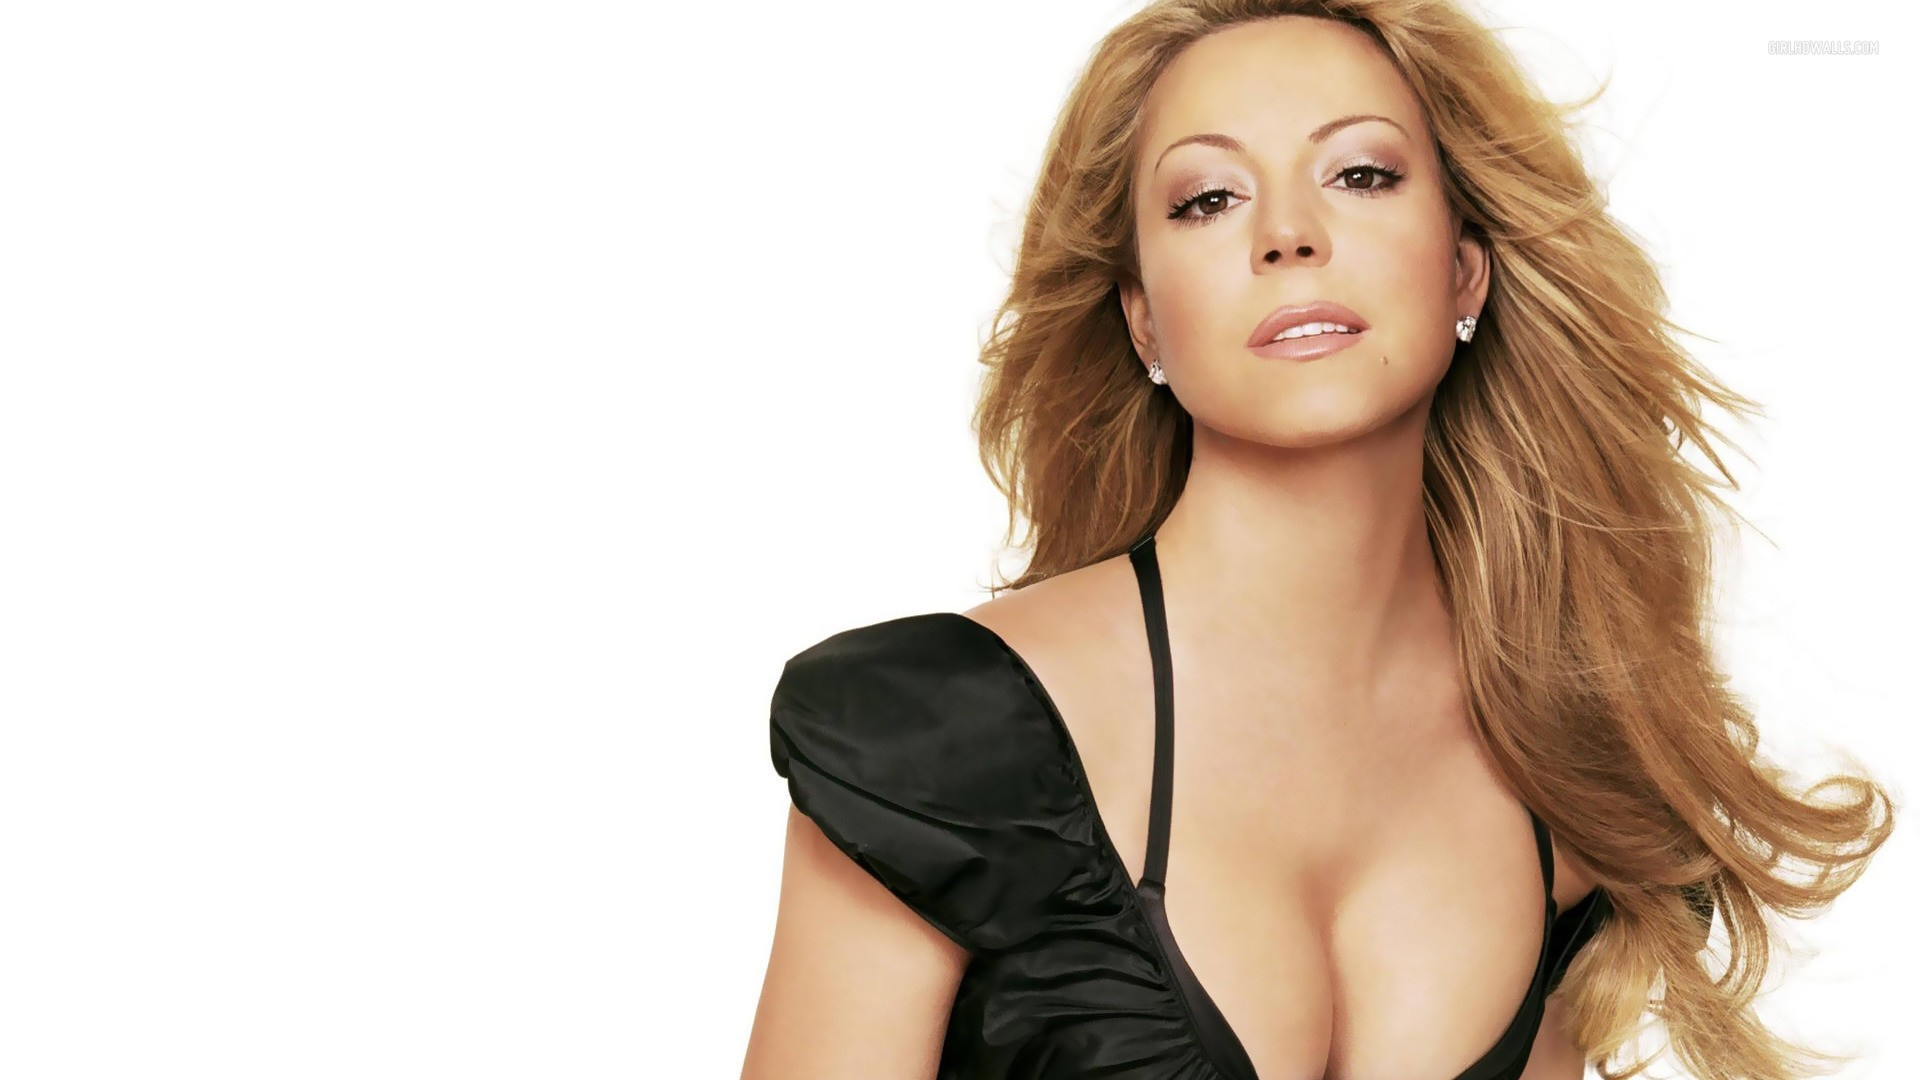 752706-popular-mariah-carey-wallpapers-1920x1080-for-mobile-hd